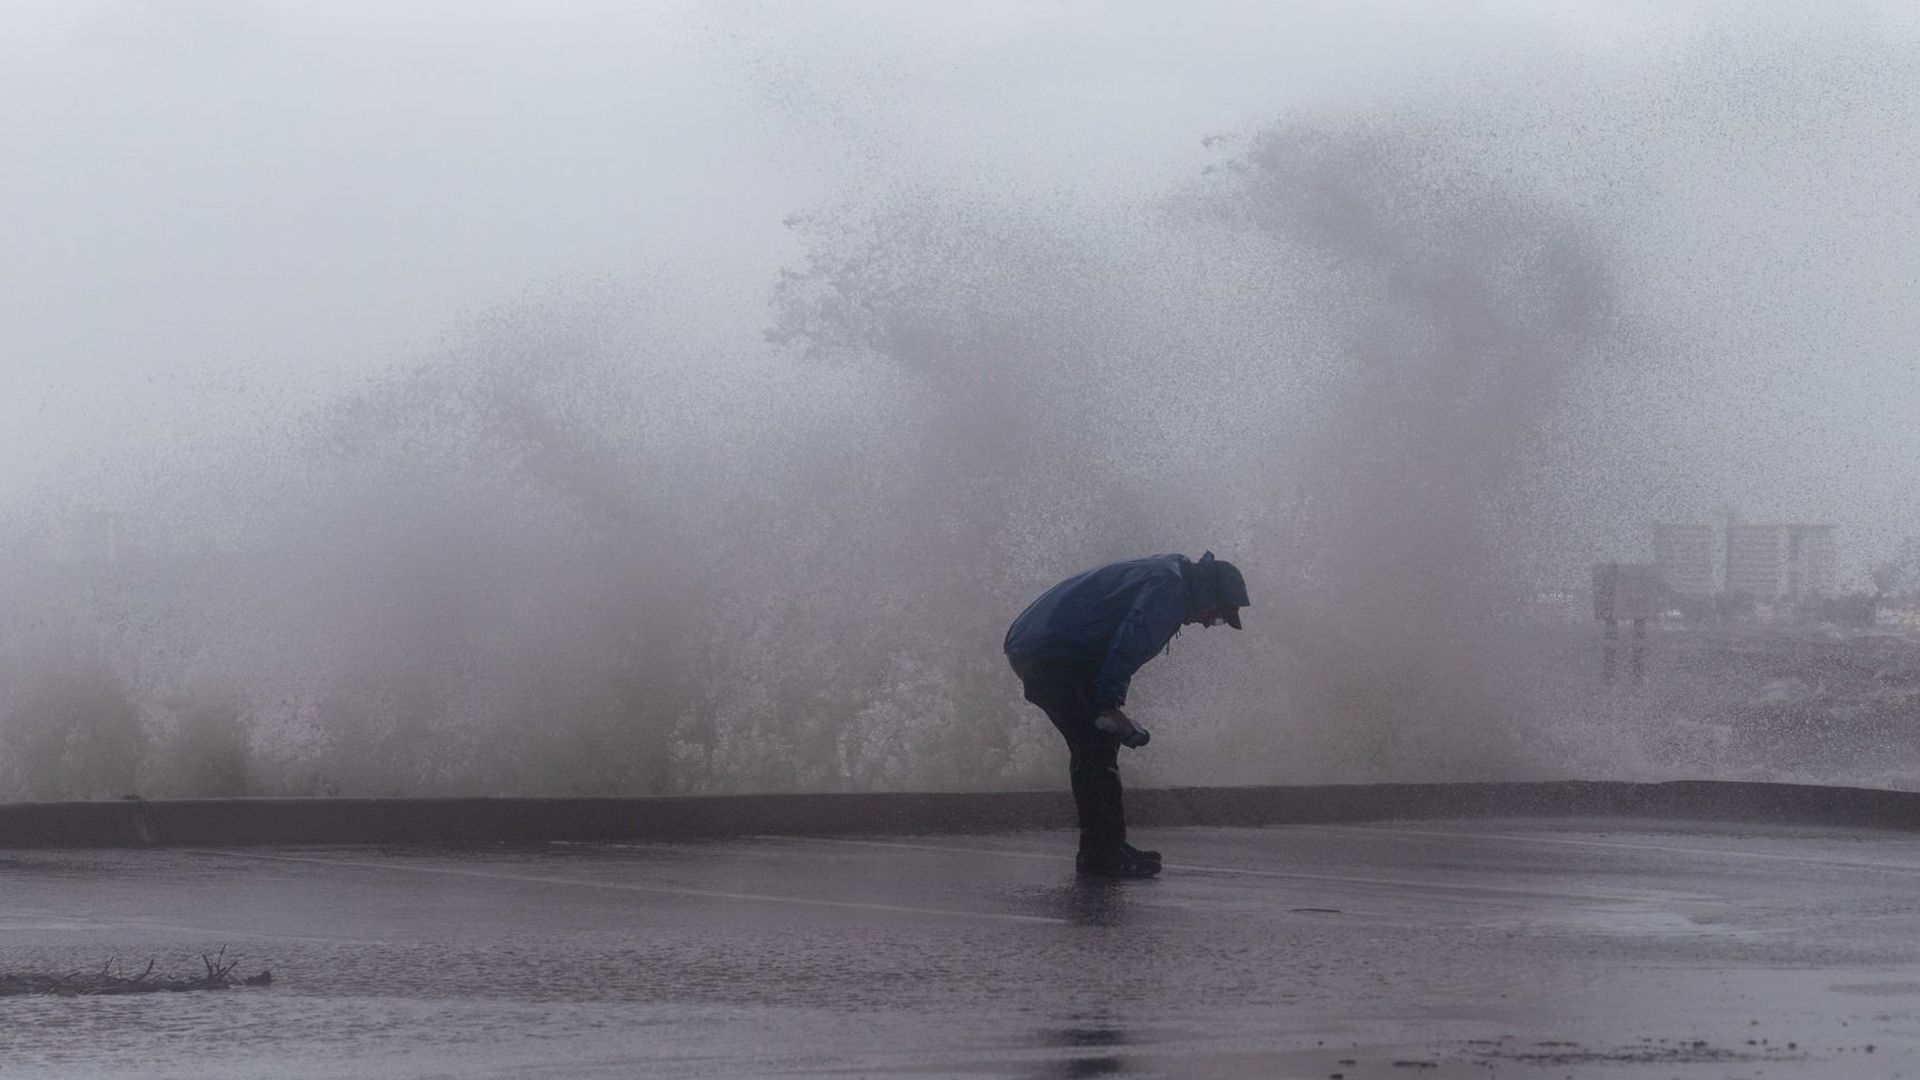 Strong gusts of wind and bands of heavy rain hit the Jensen Beach Causeway Park in Jensen Beach, Florida on Tuesday.